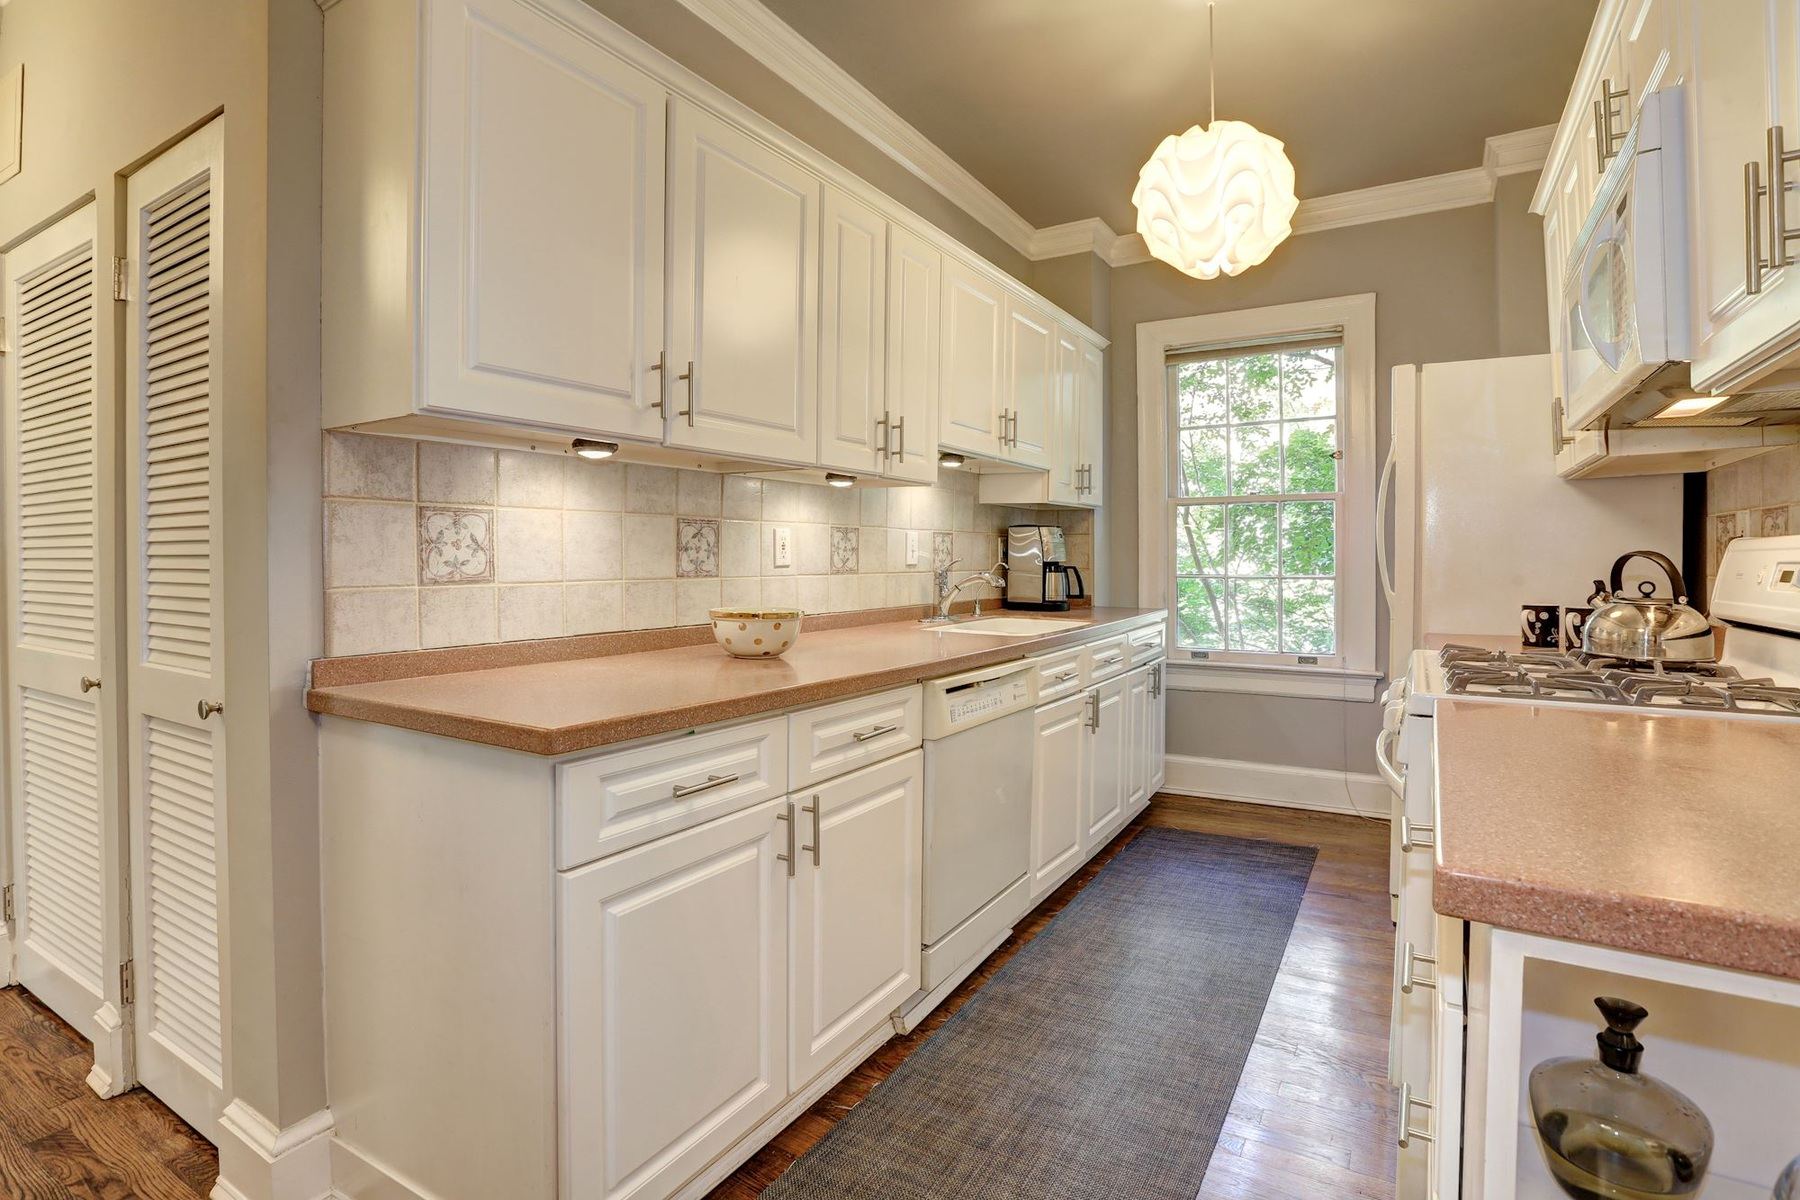 Additional photo for property listing at 1661 Crescent Place Nw 210, Washington  Washington, District Of Columbia 20009 Verenigde Staten